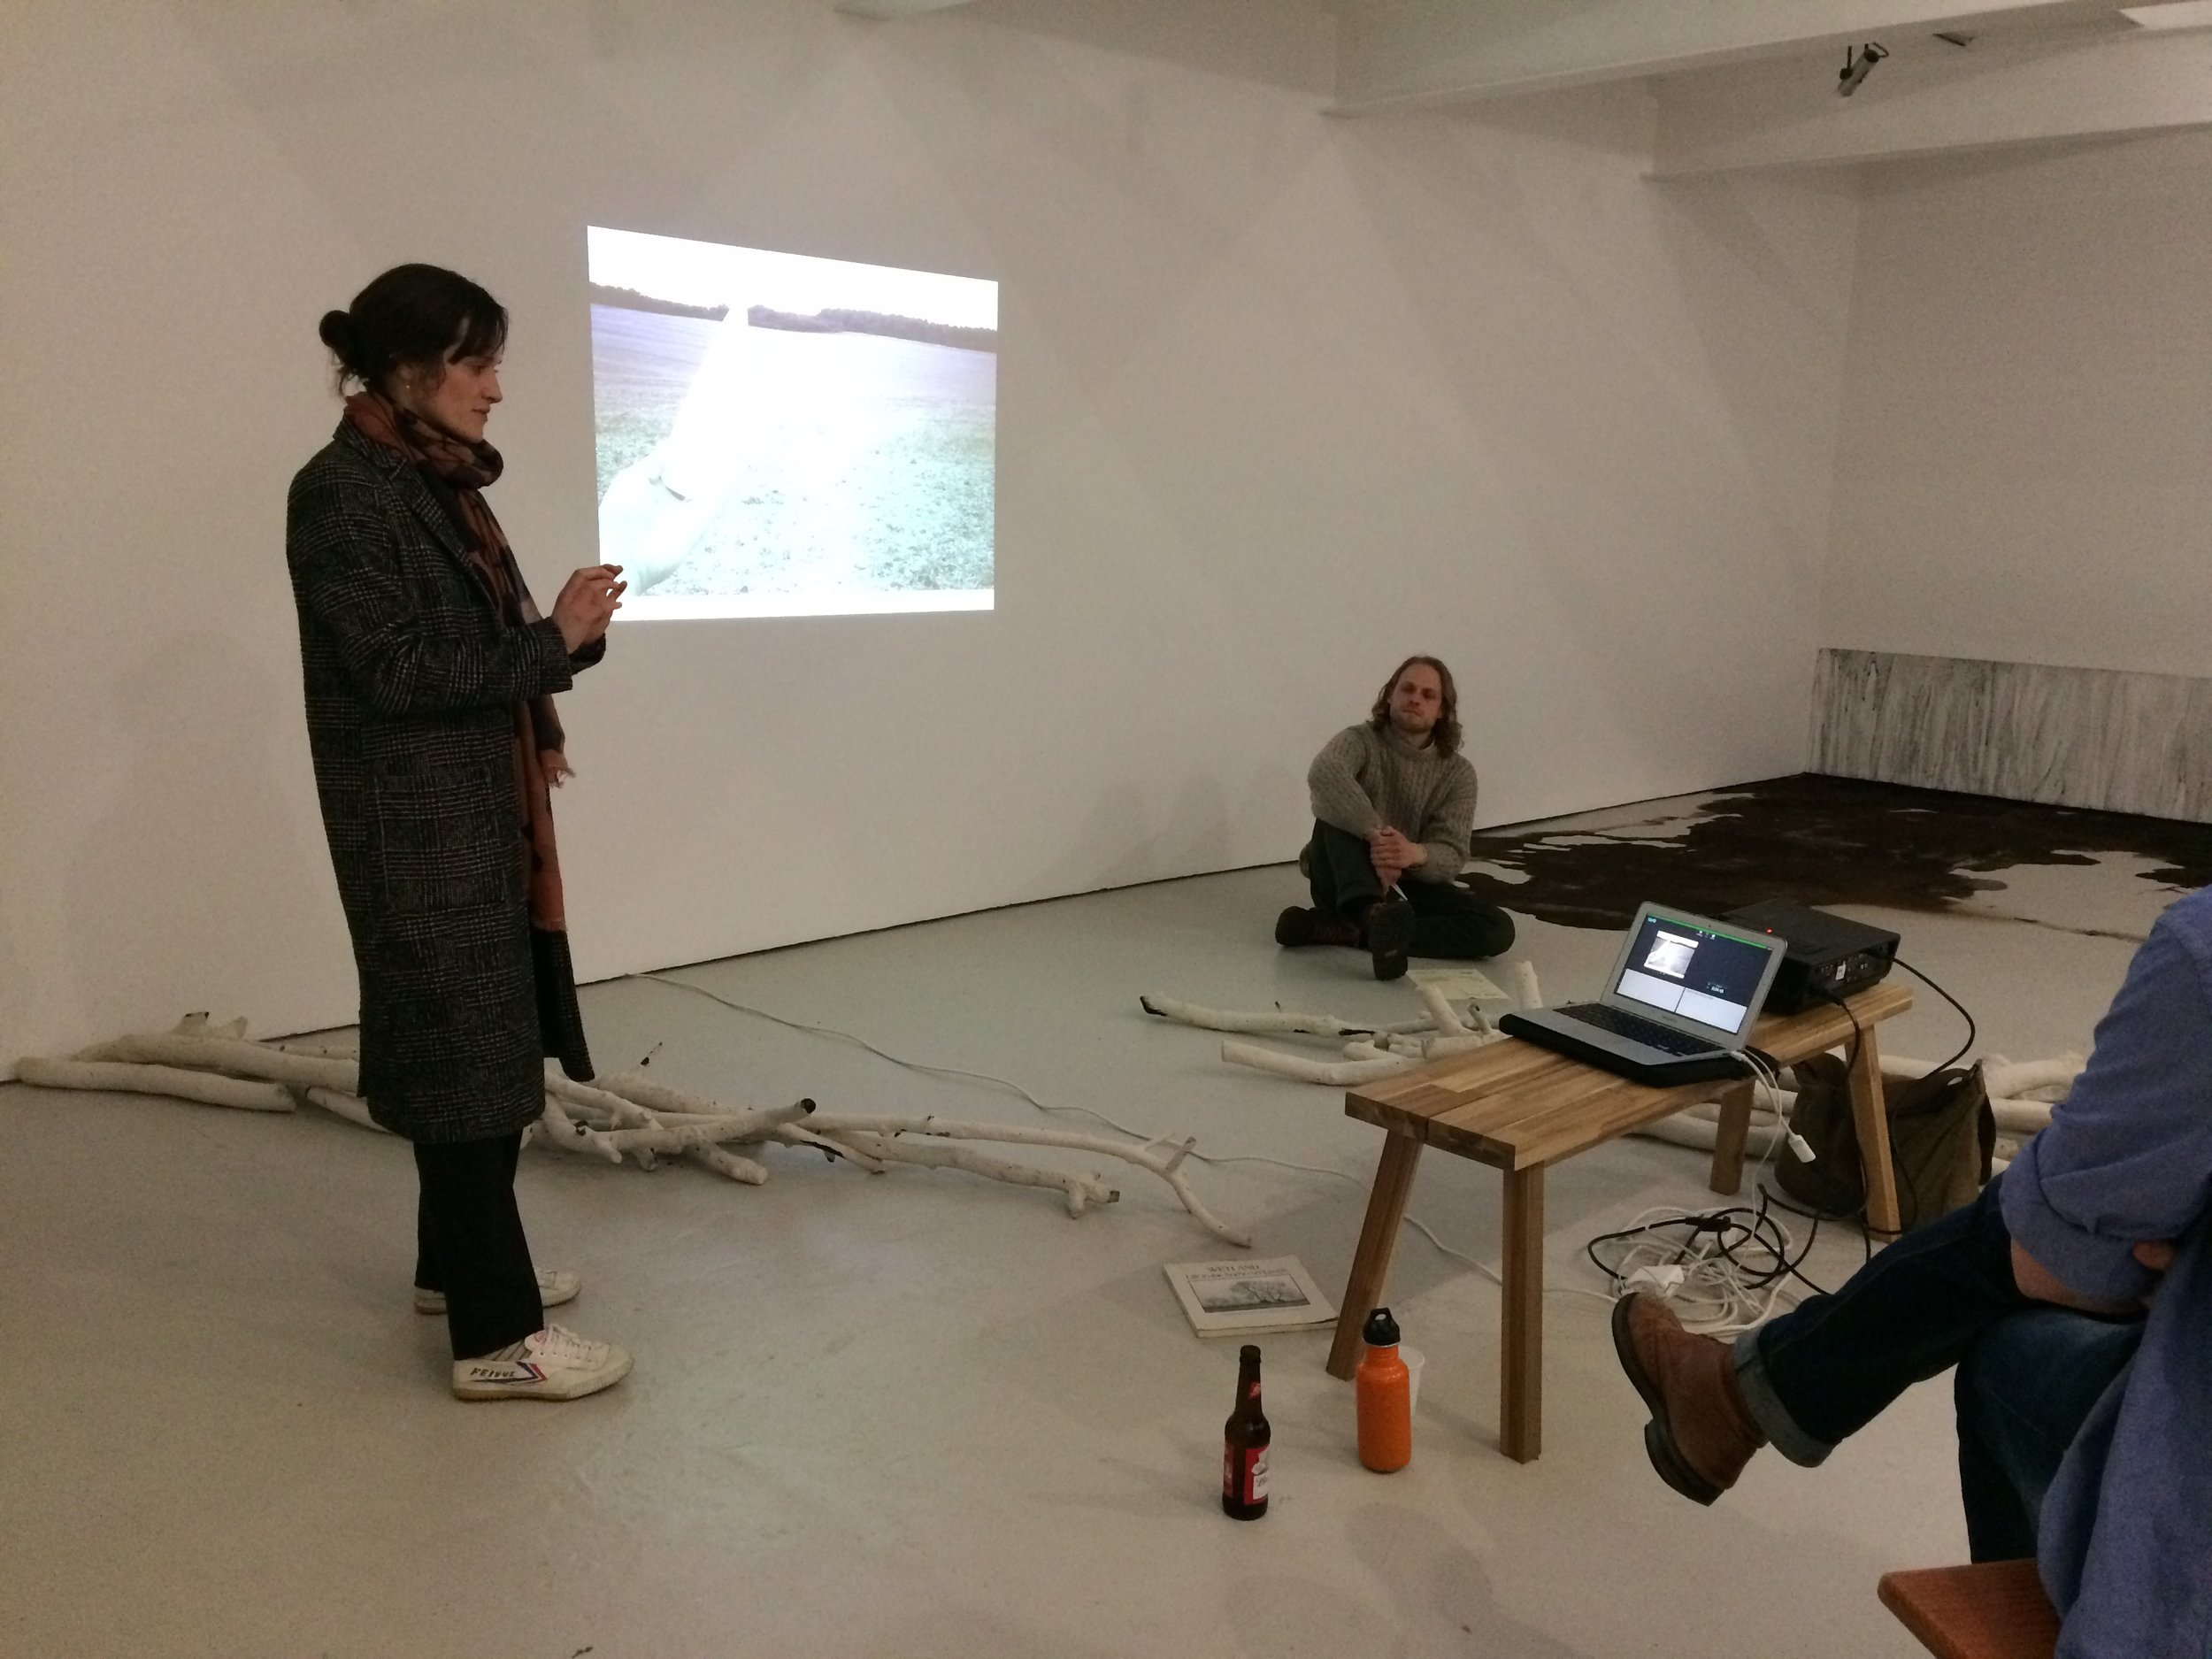 Lotte Scott giving a talk in her exhibition 'The Fields Are Seas' at Norwich Outpost Gallery, 2018.